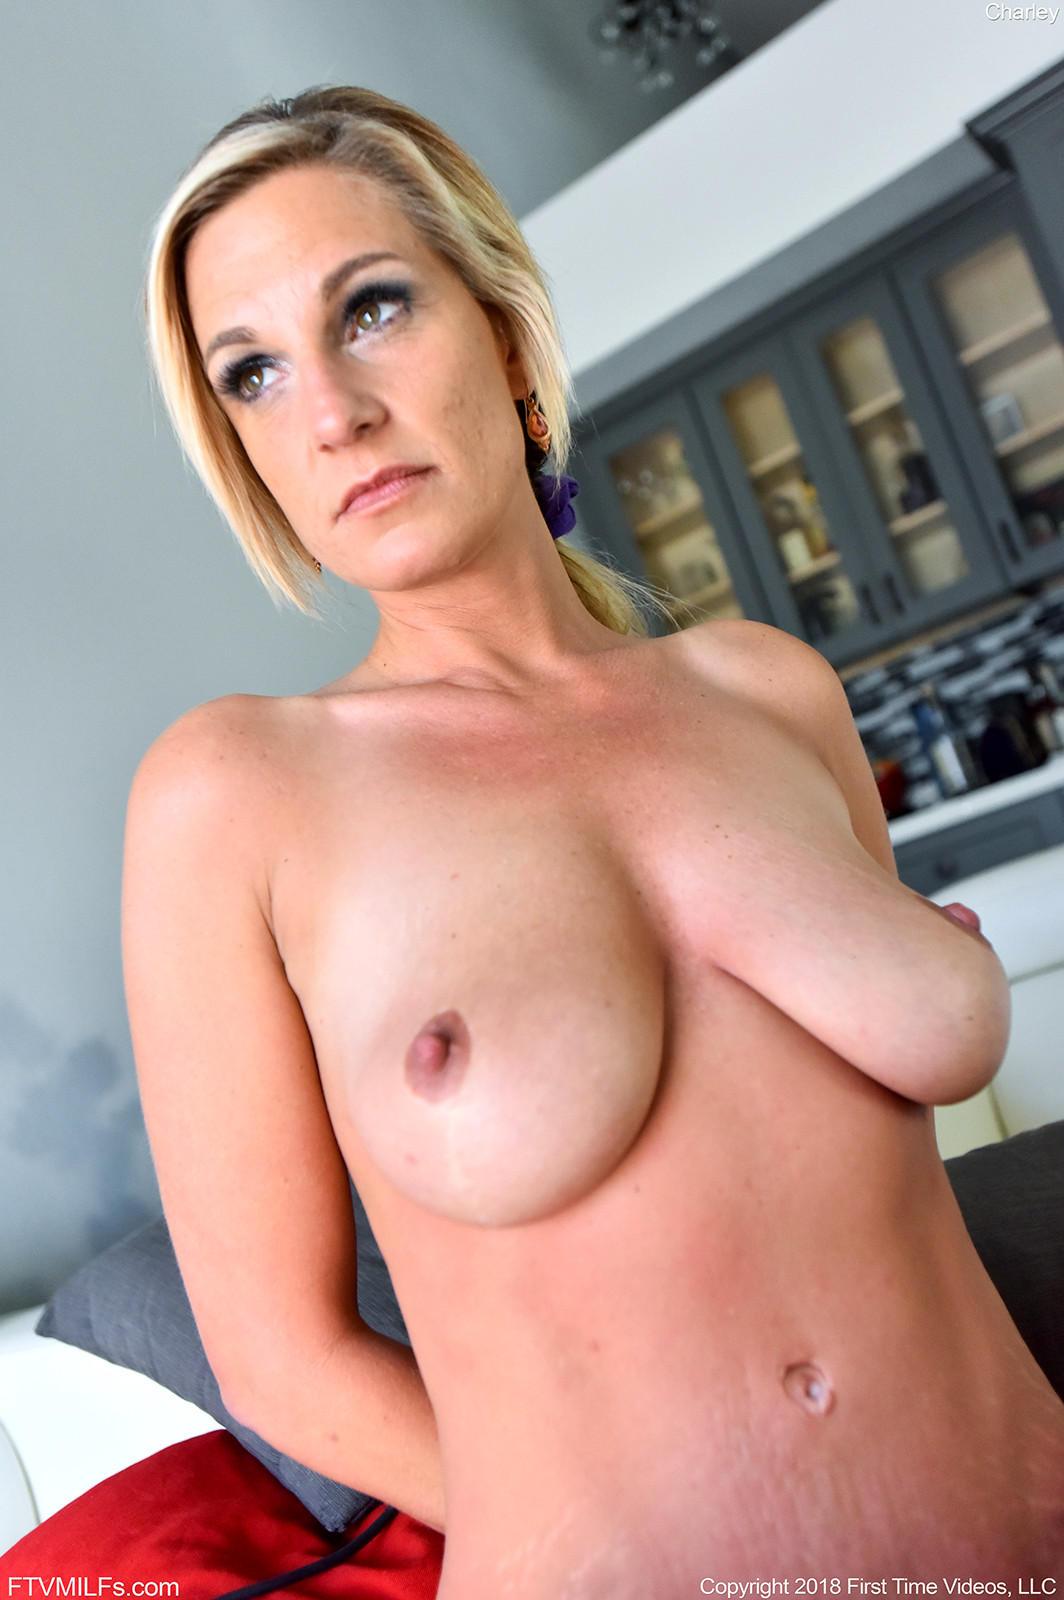 Babe Today Ftv Milfs Charley Daniels Features Pussy Spread -4805